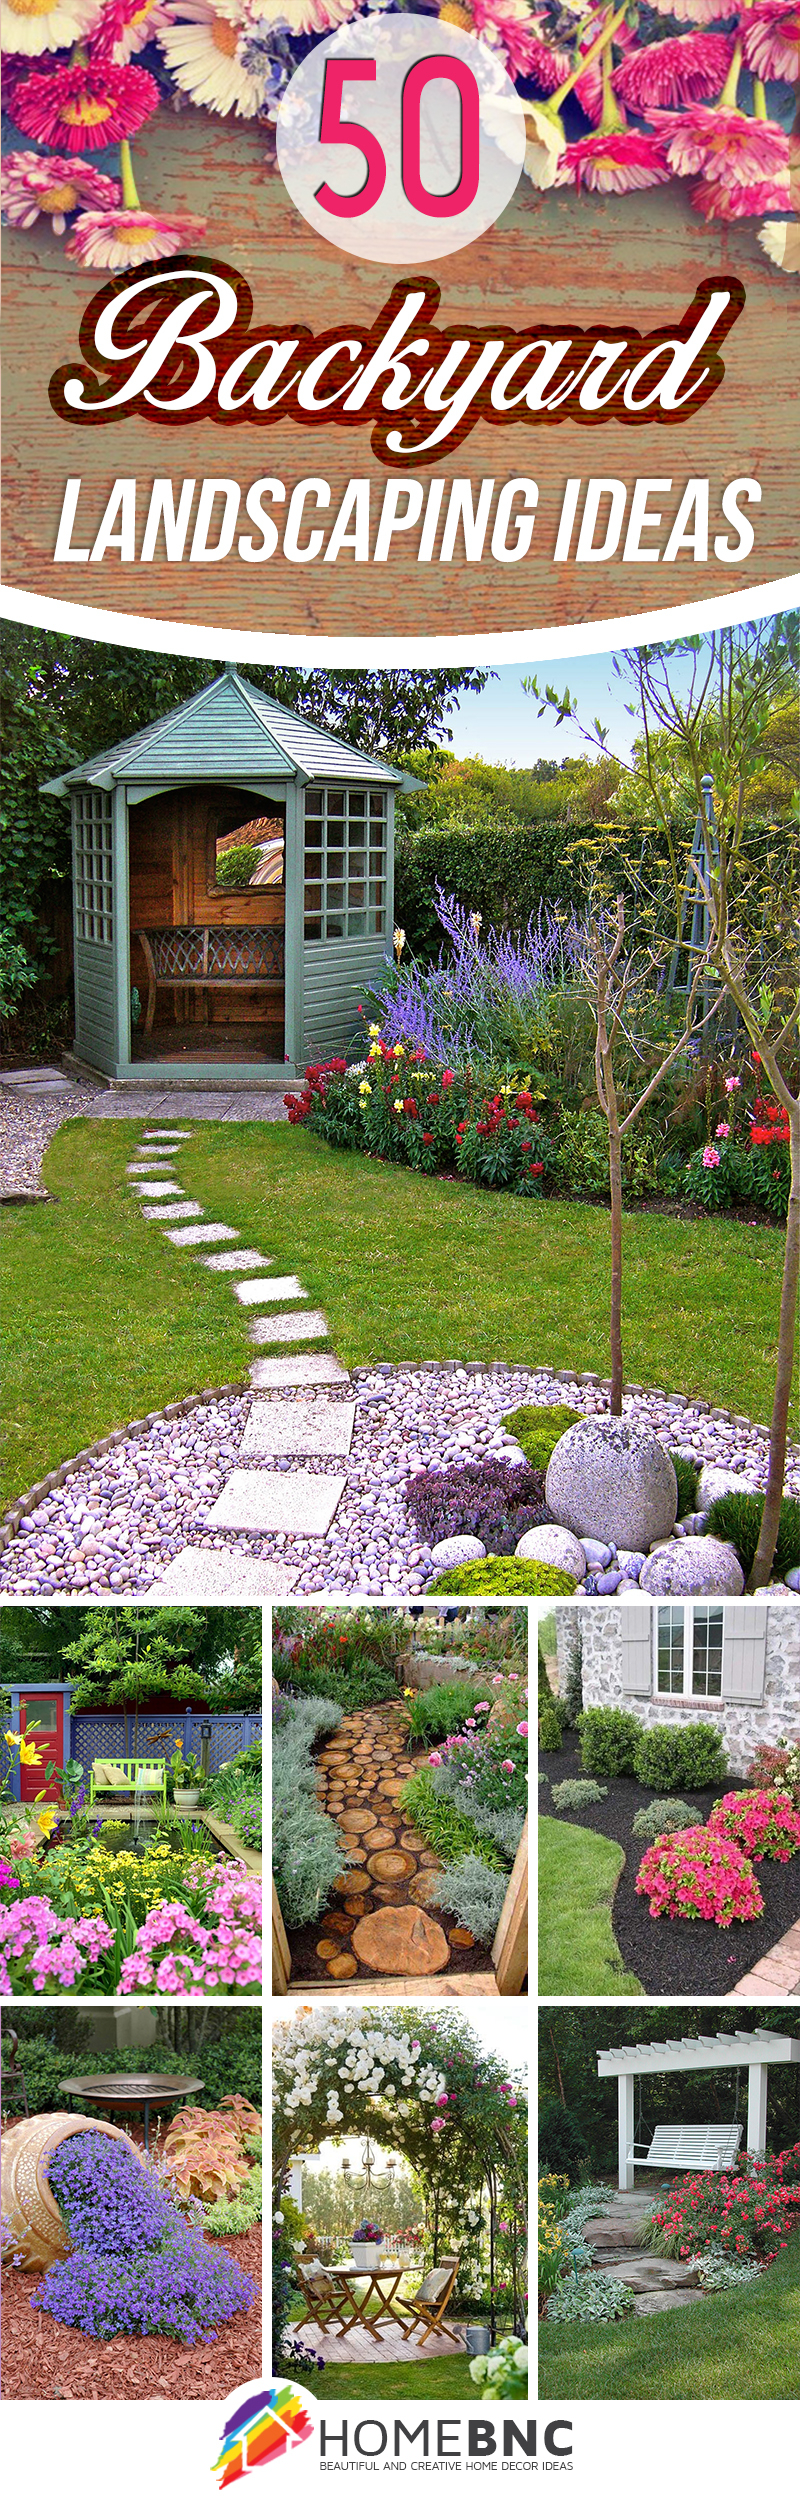 50 Best Backyard Landscaping Ideas And Designs In 2019 with regard to 12 Genius Designs of How to Craft Good Backyard Ideas